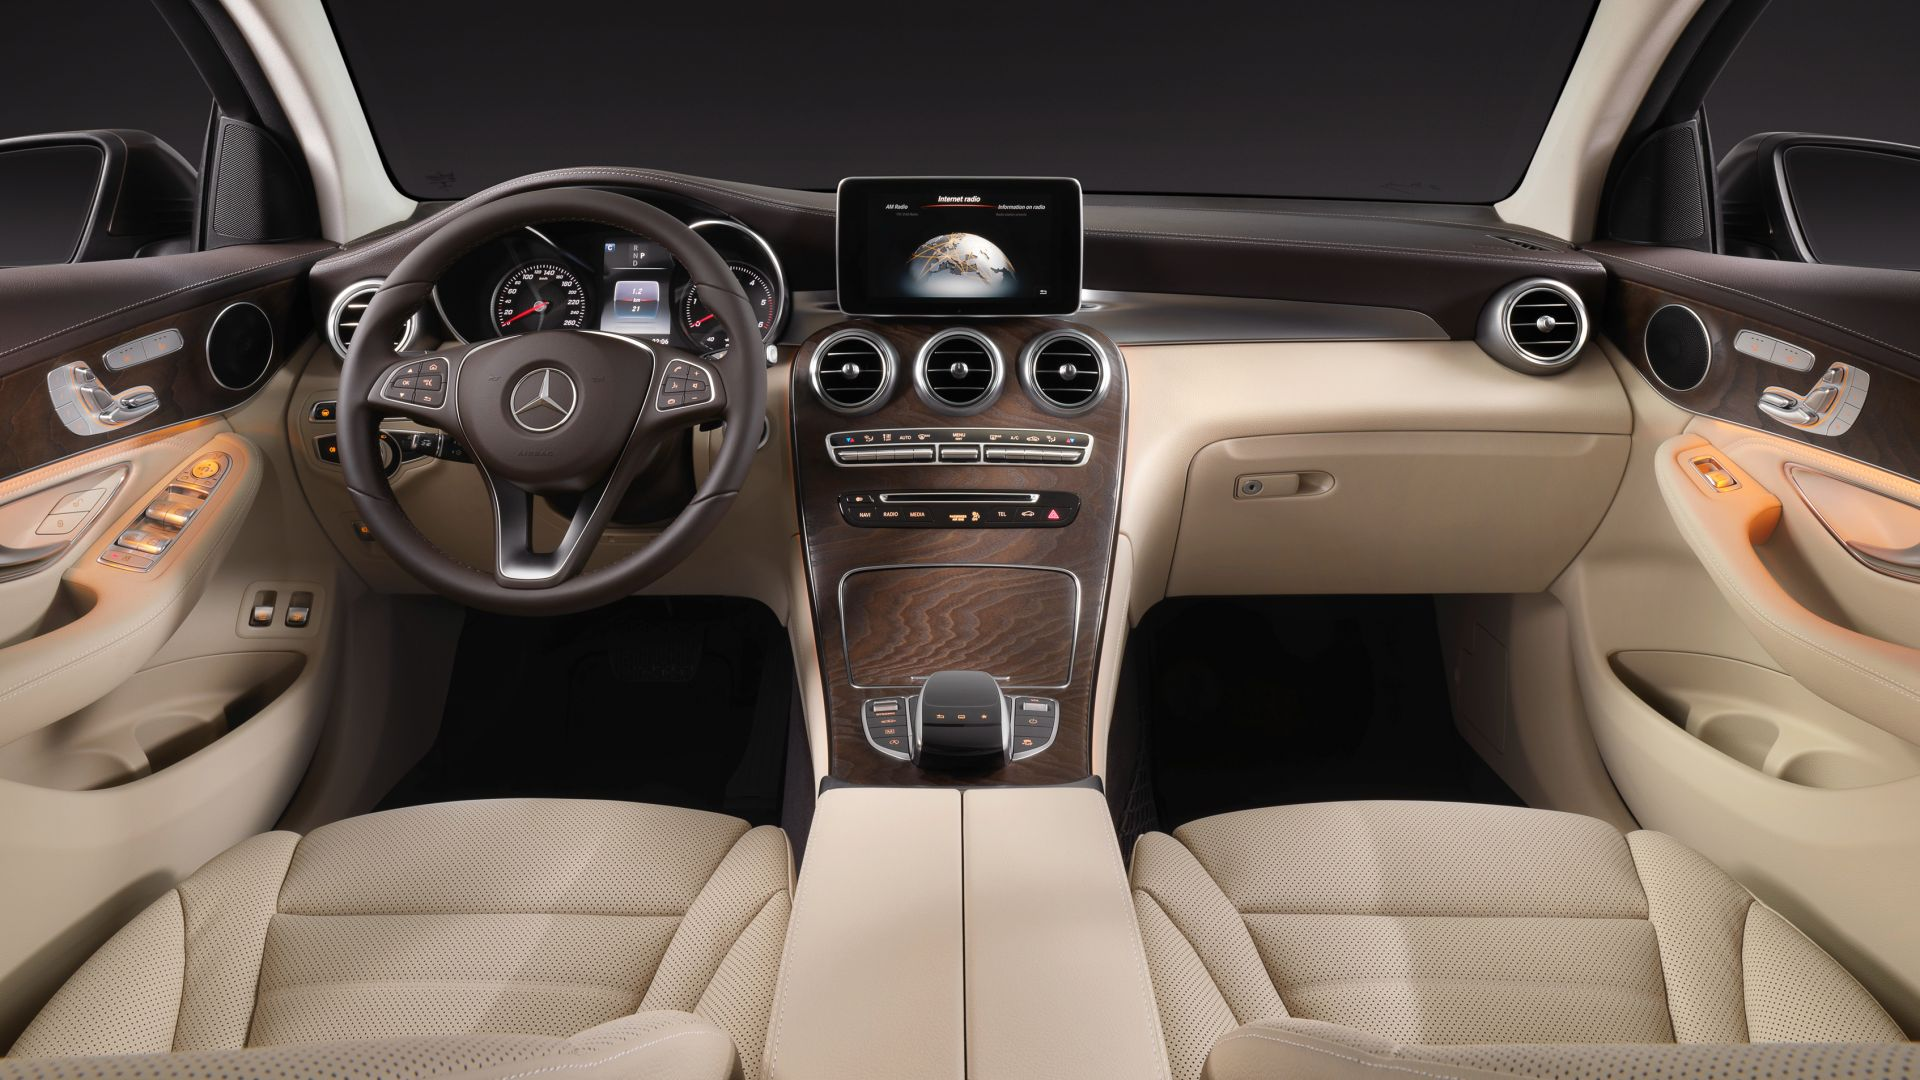 Mercedes-benz Glc klasse, coupe, NYIAS 2016, interior (horizontal)